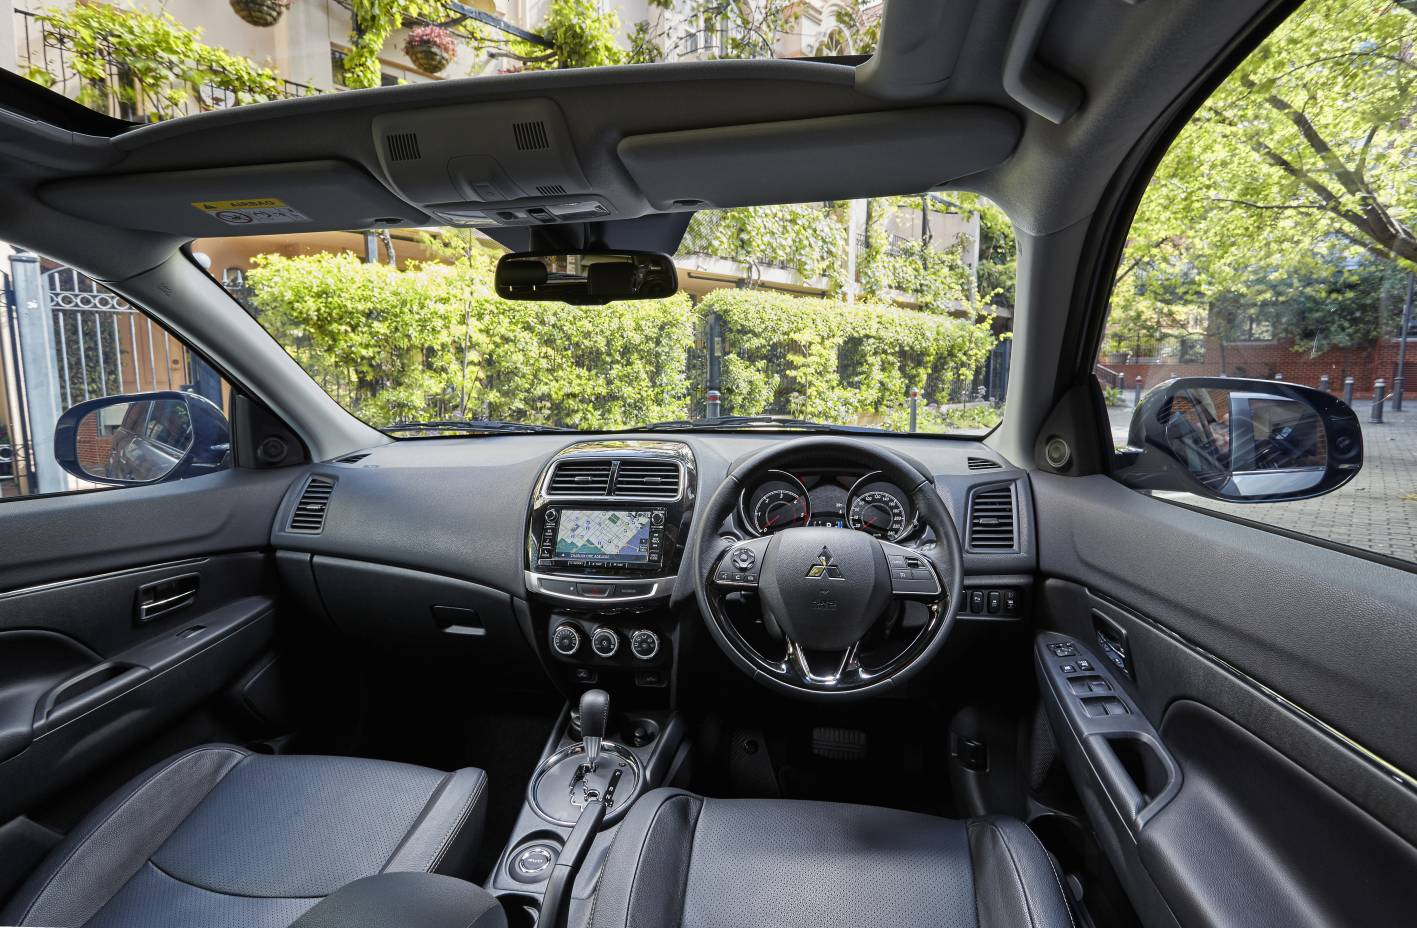 2017 Mitsubishi ASX on sale now in Australia - ForceGT.com